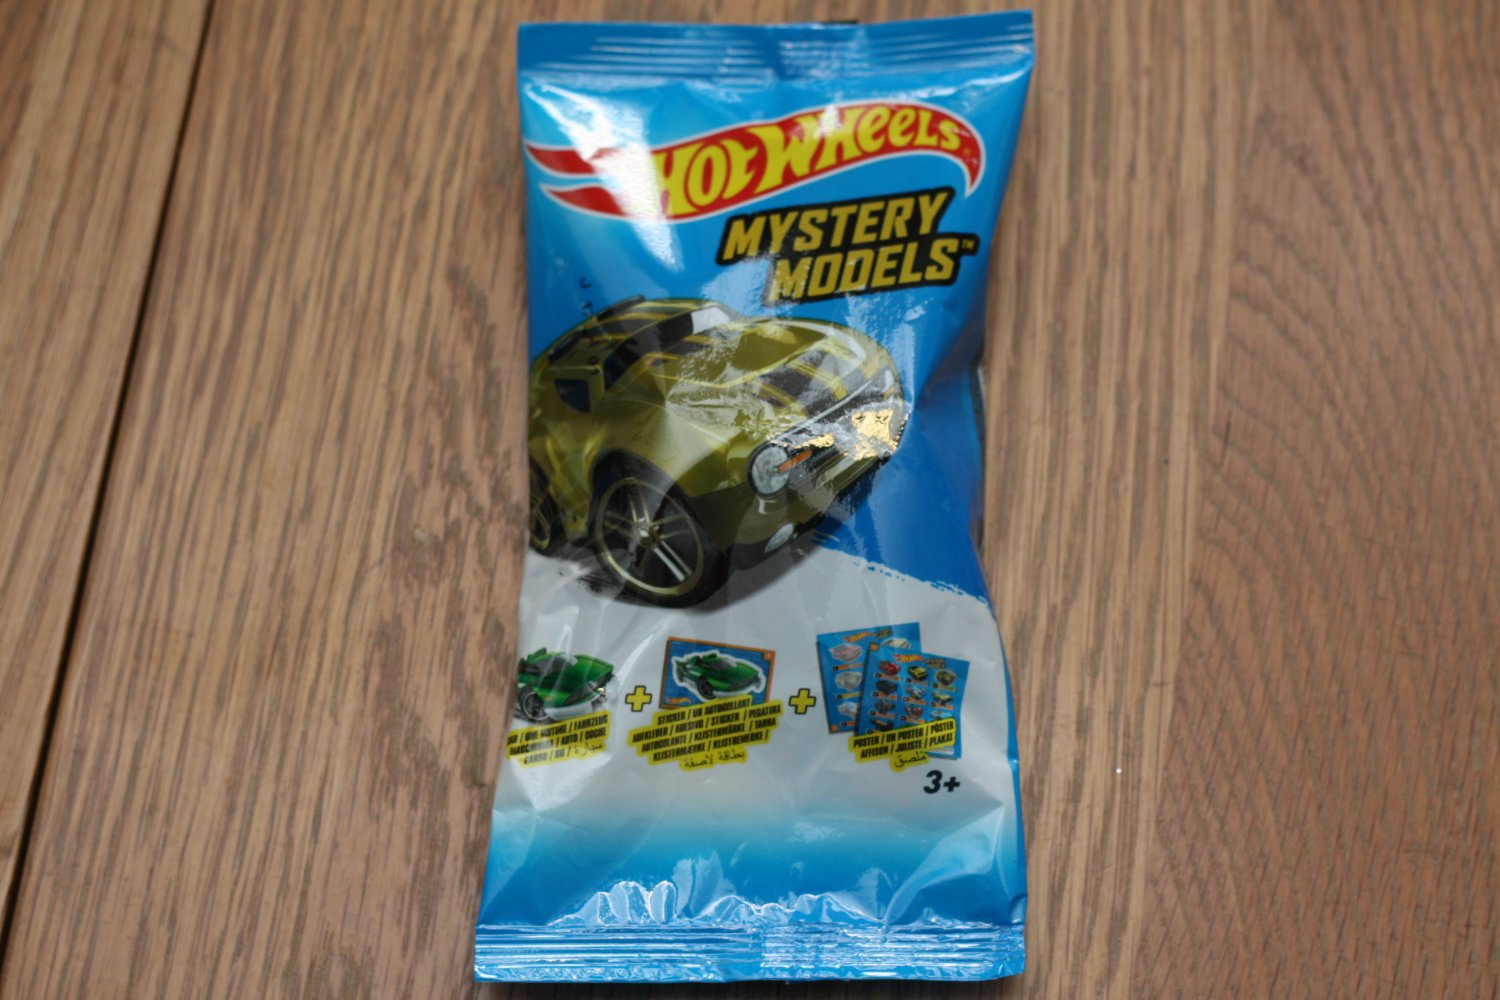 Hot Wheels 2016 Mystery Models (Series 2) Rocket Box (#3 of 12)